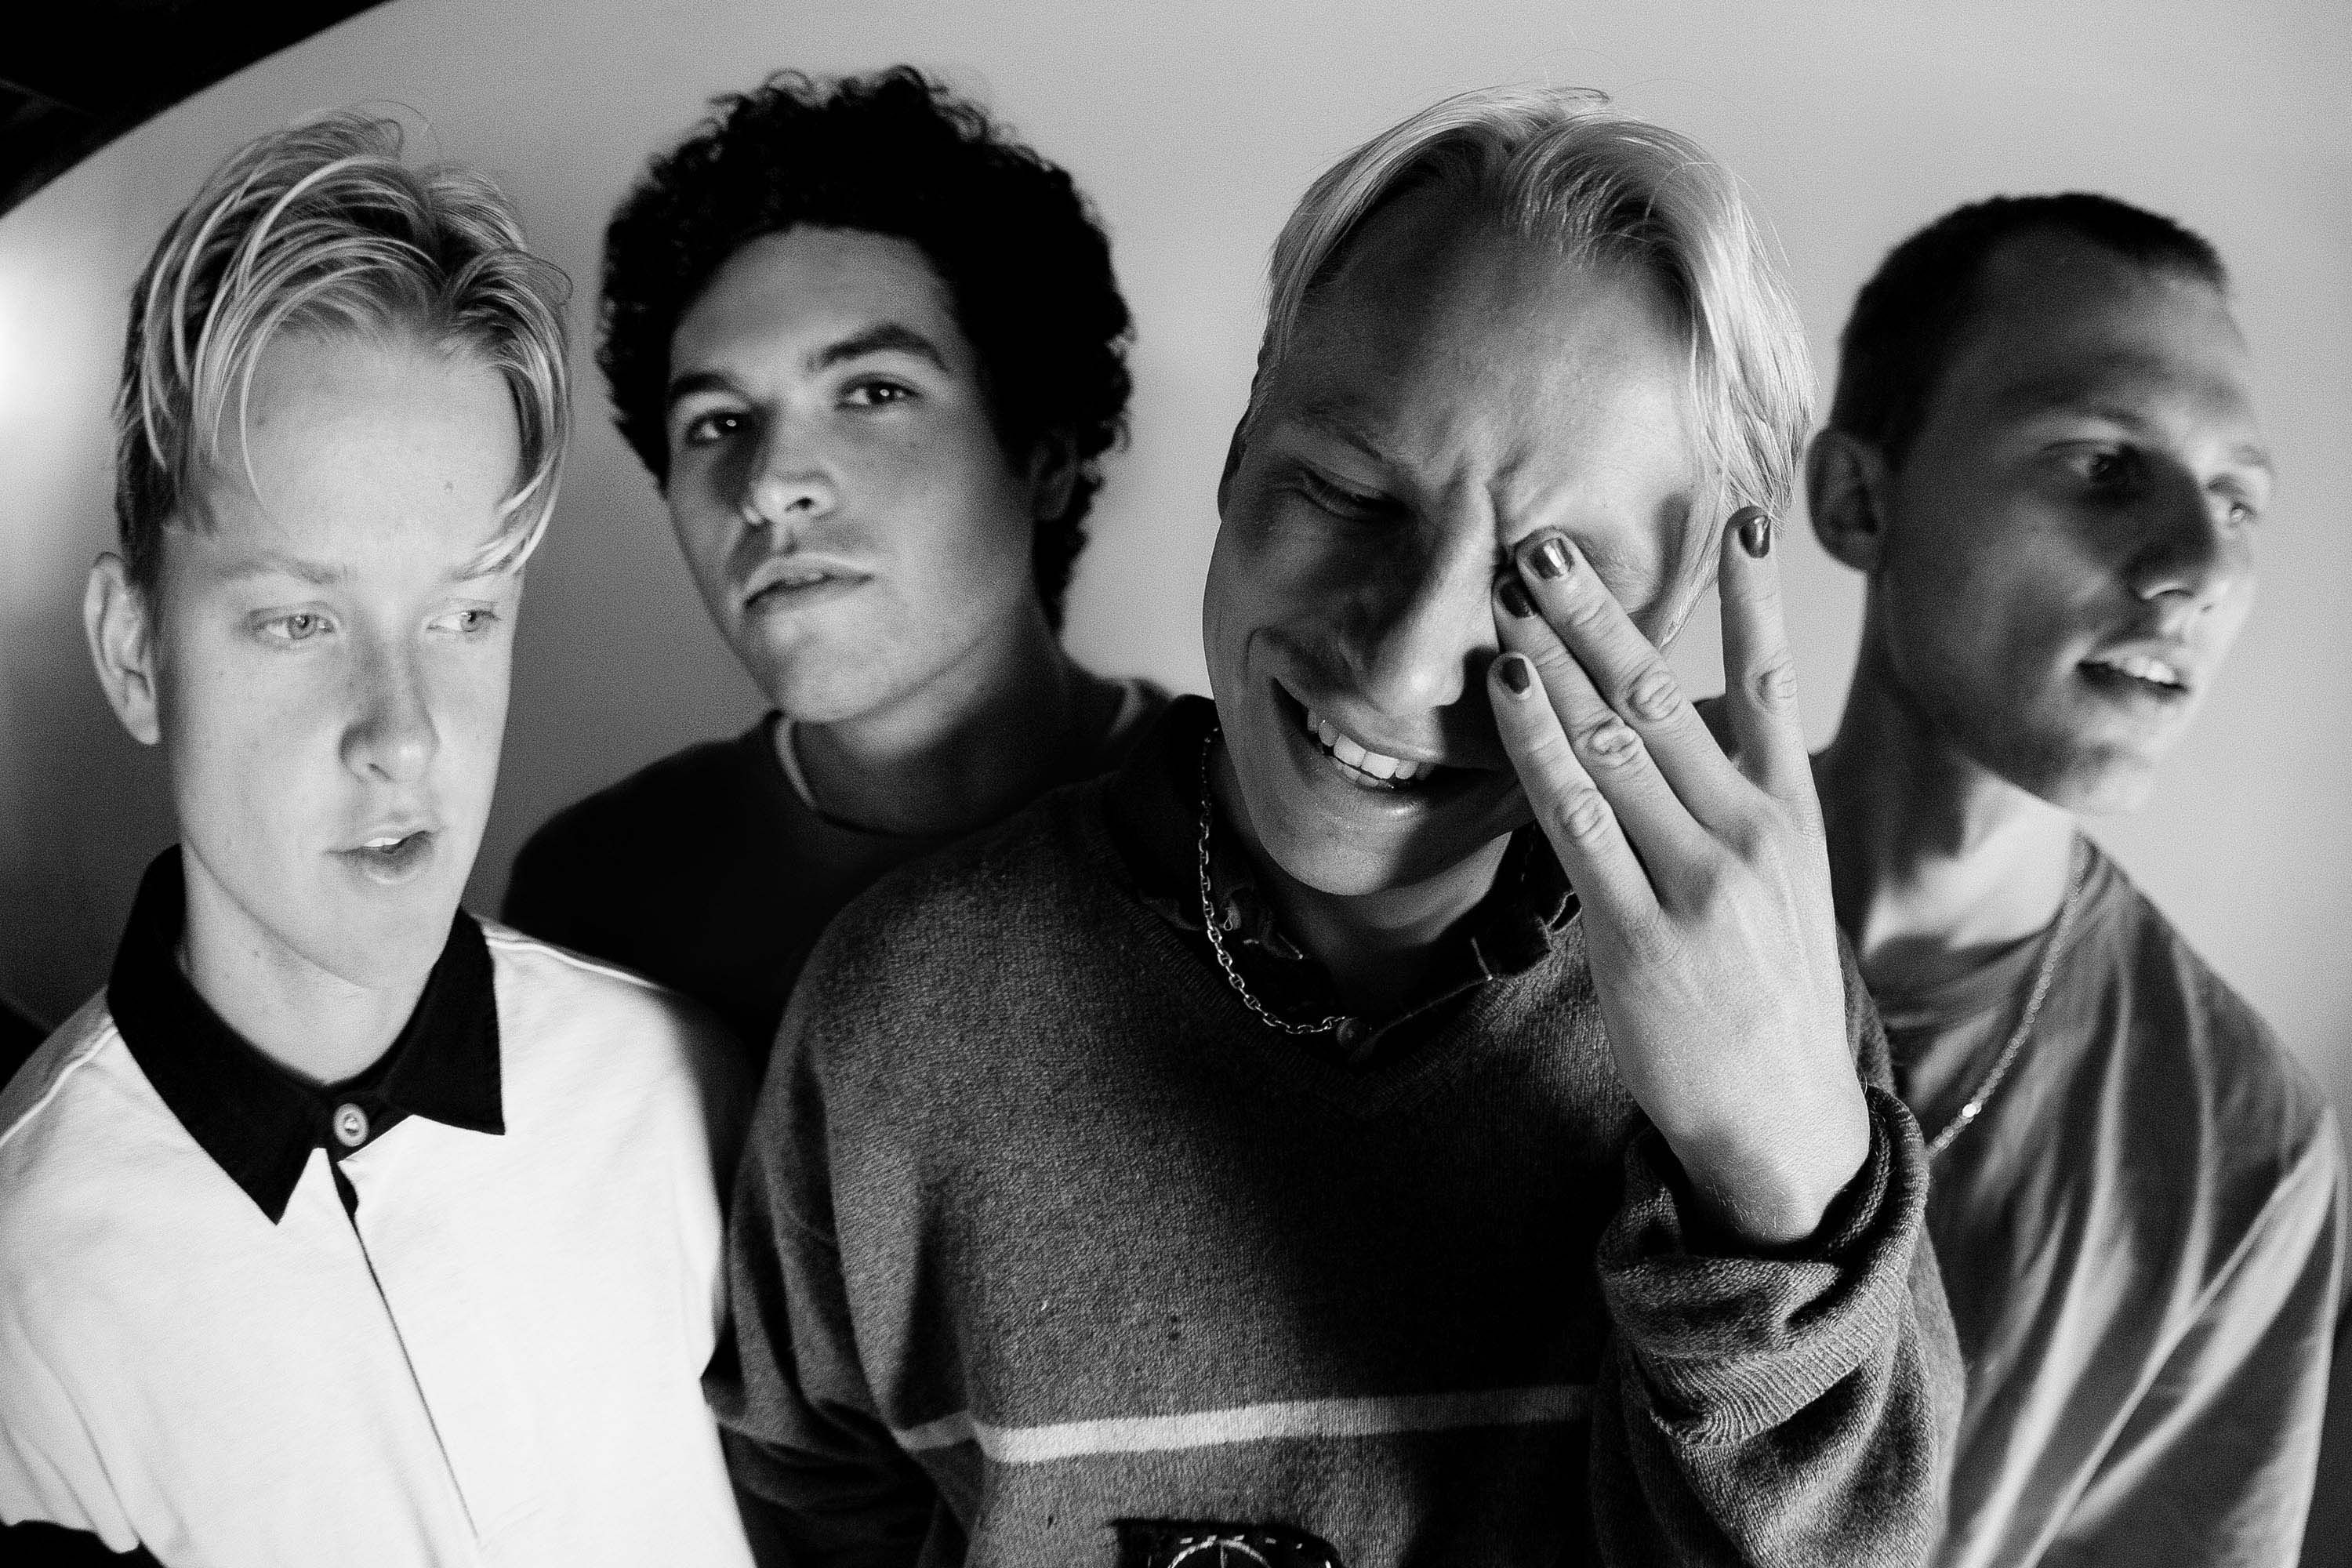 SWMRS release new video for 'Lose Lose Lose'